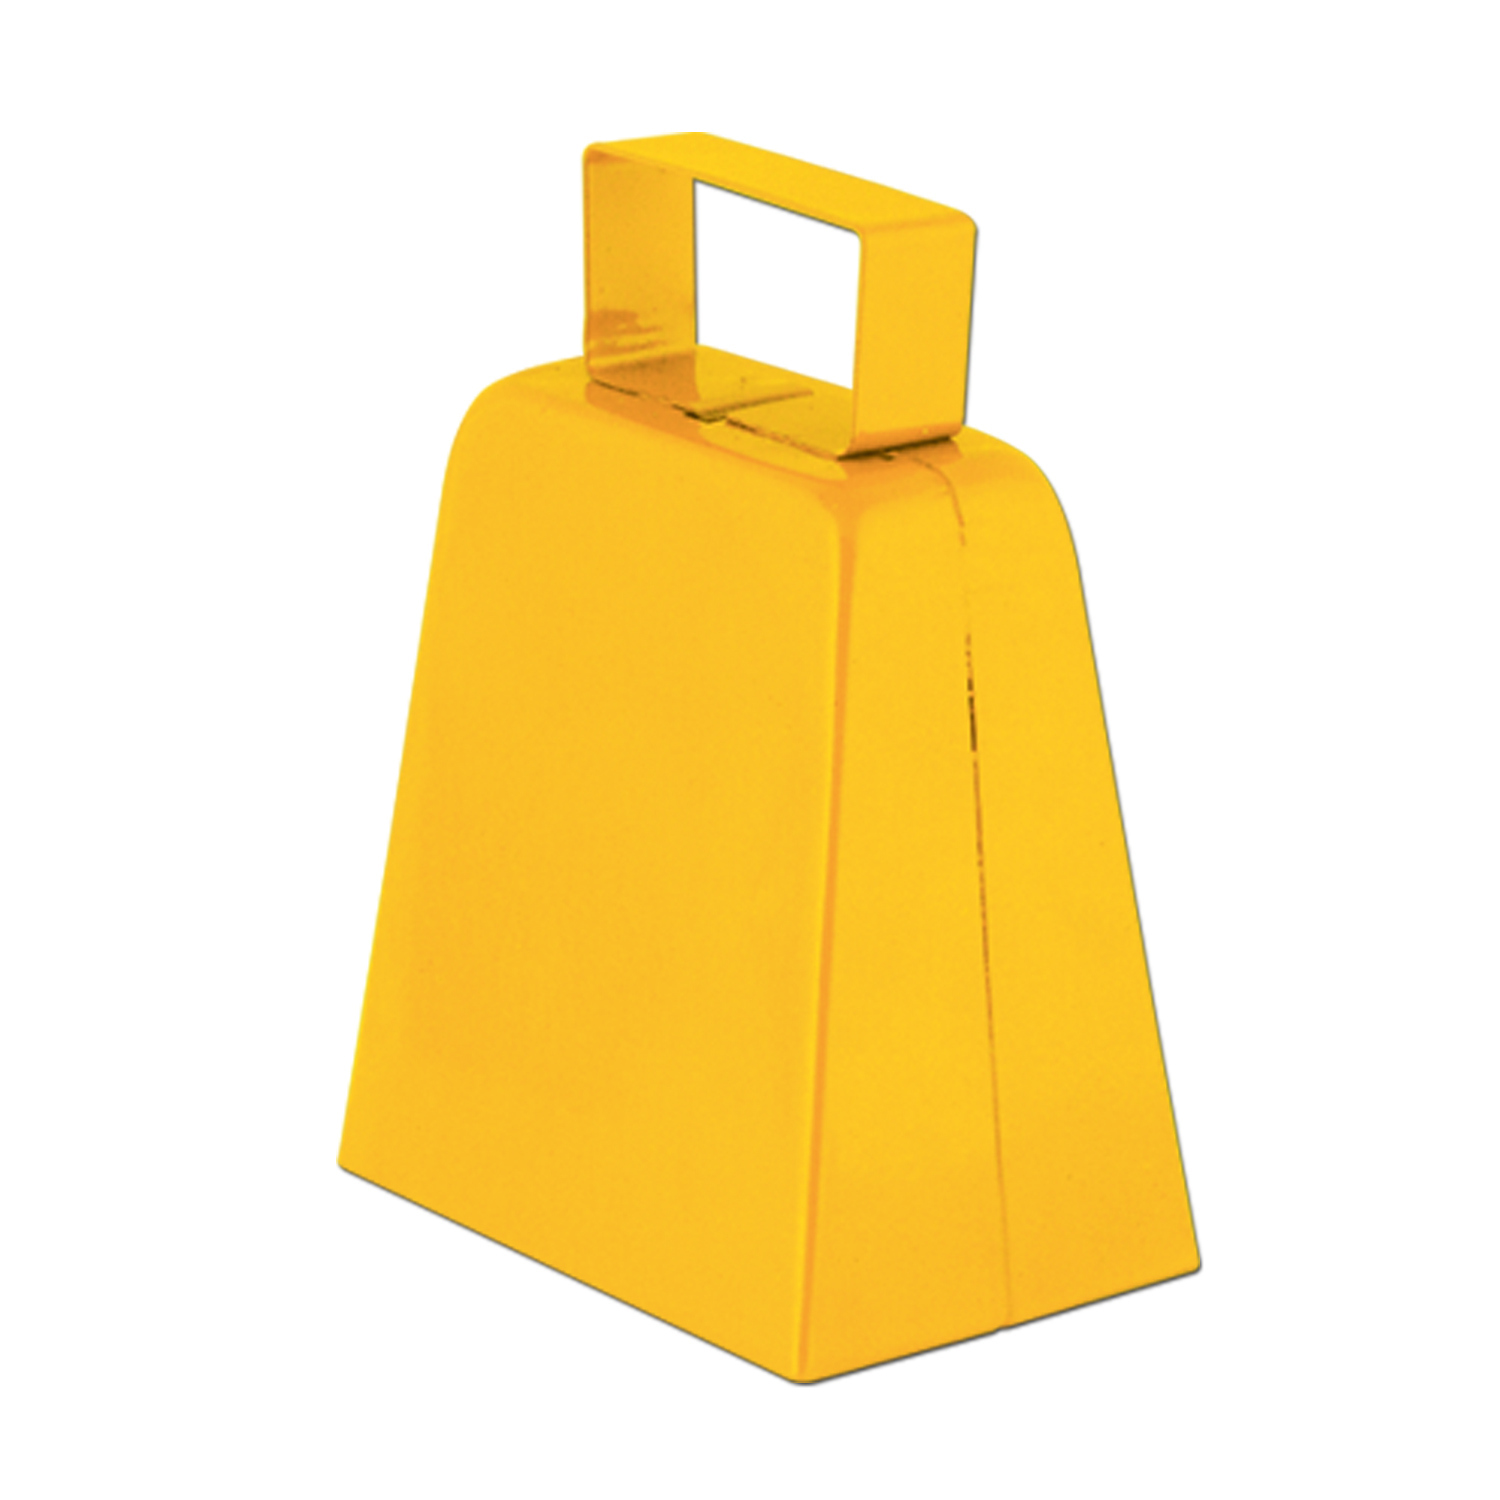 Cowbells (Pack of 12) yellow, cowbells, tailgating, superbowl, playoffs, noisemaker, football, party,